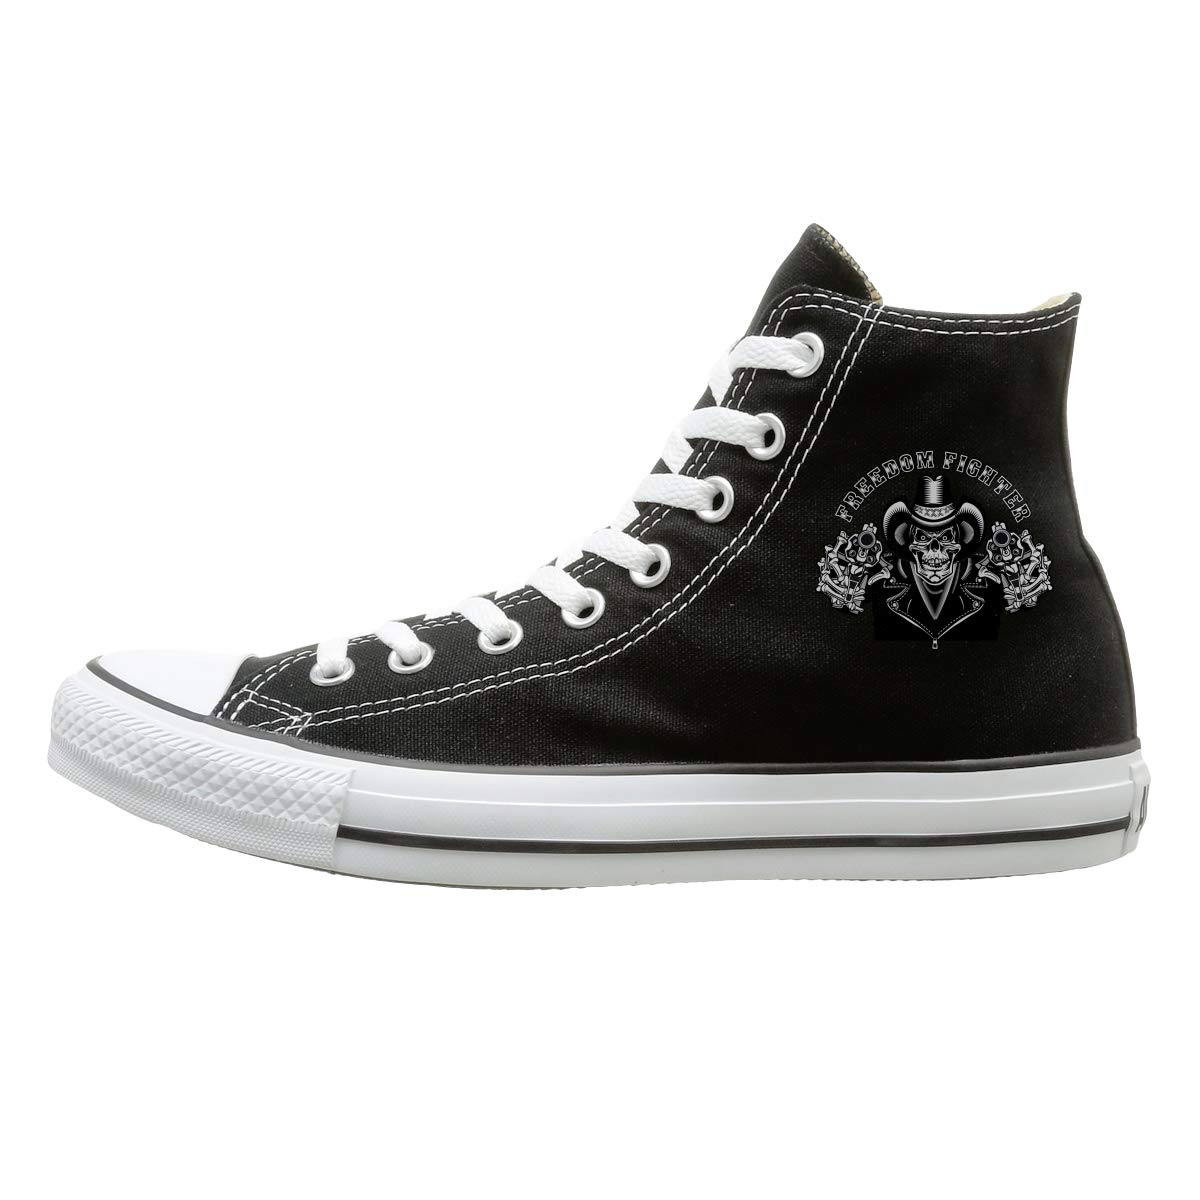 Unisex High Top Stylish Sneakers Cowboy Skull And Revolver Lace Up Canvas Shoes